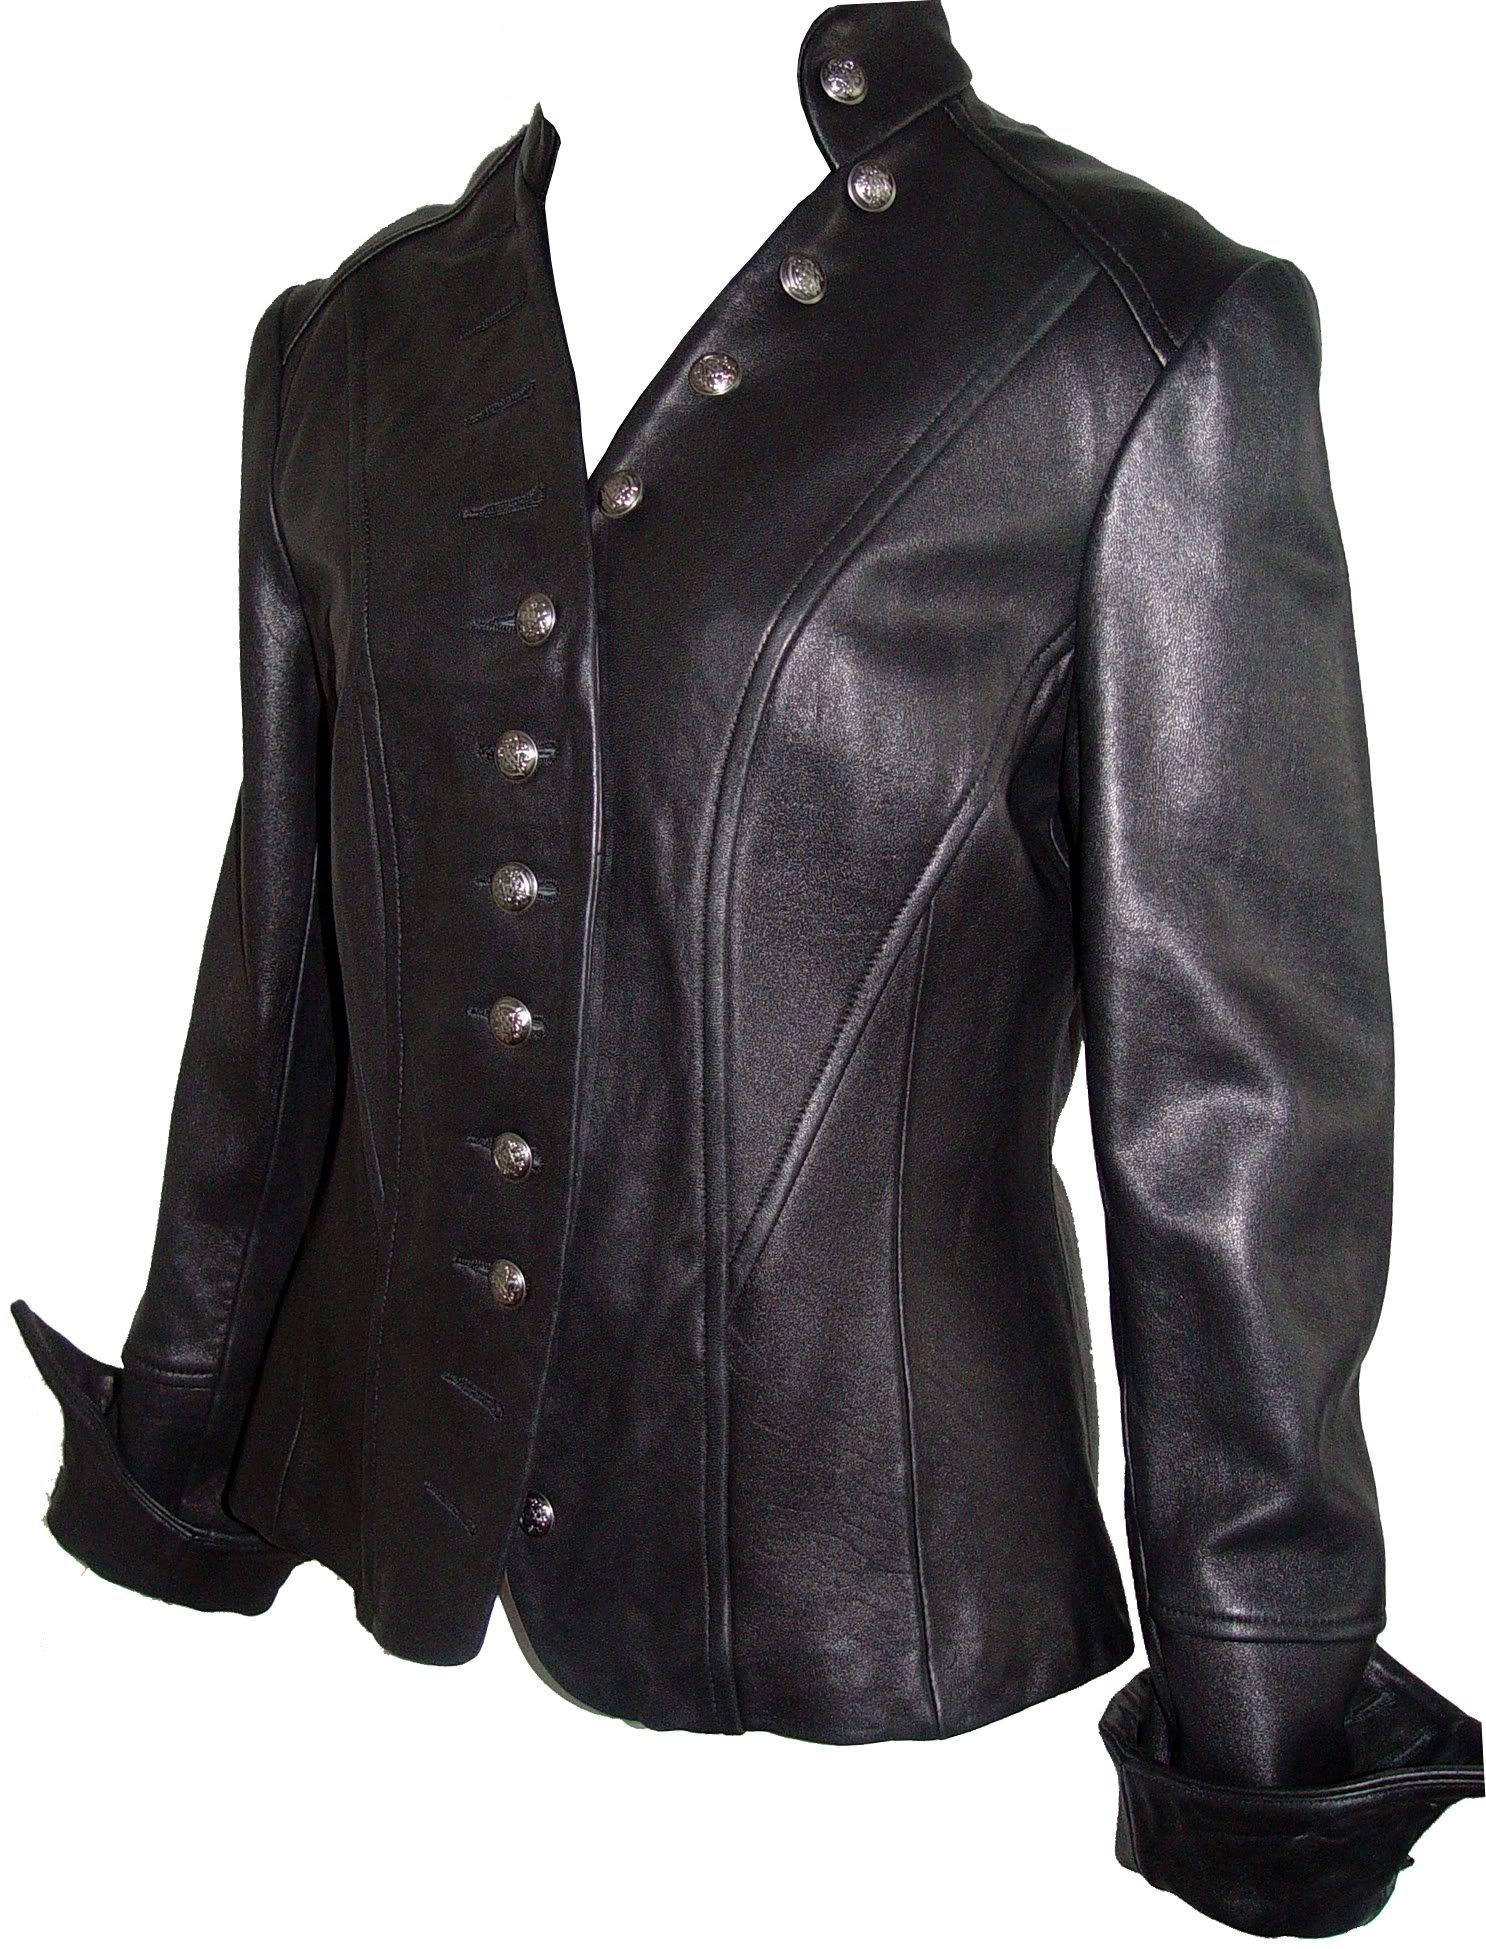 Johnny 4003 Best Cool Leather Blazer Jackets Fitted Business Clothing Soft Lamb by Johnnyblue (Image #5)